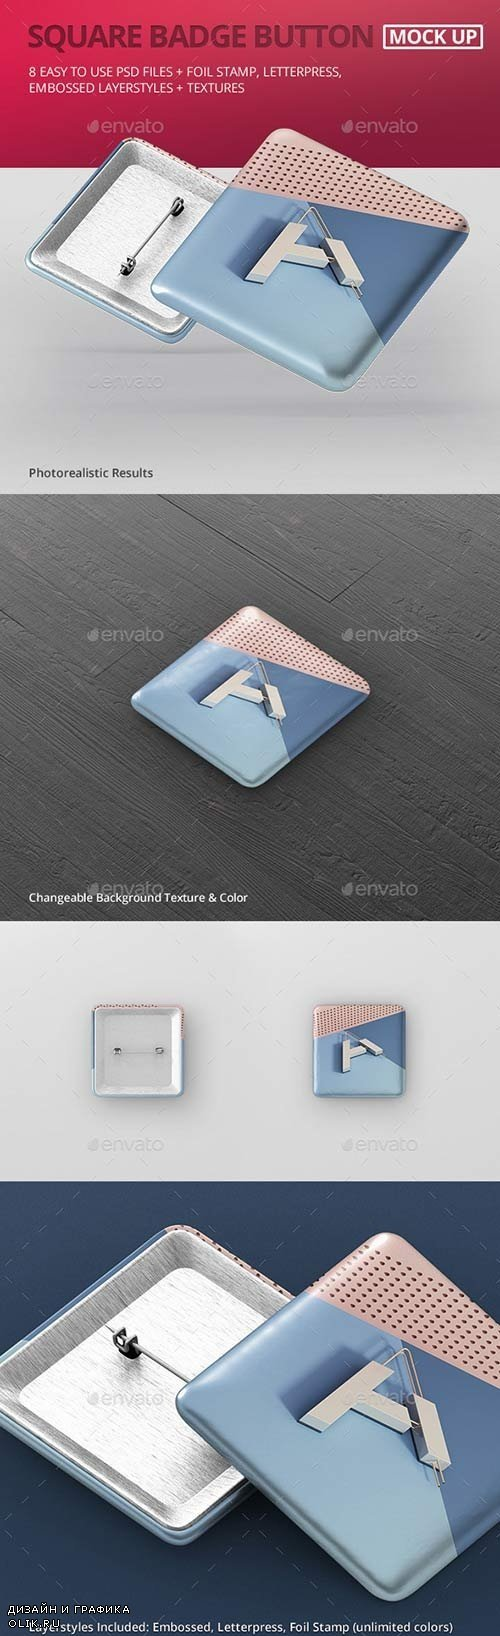 Square Badge Button Mockup 19266547